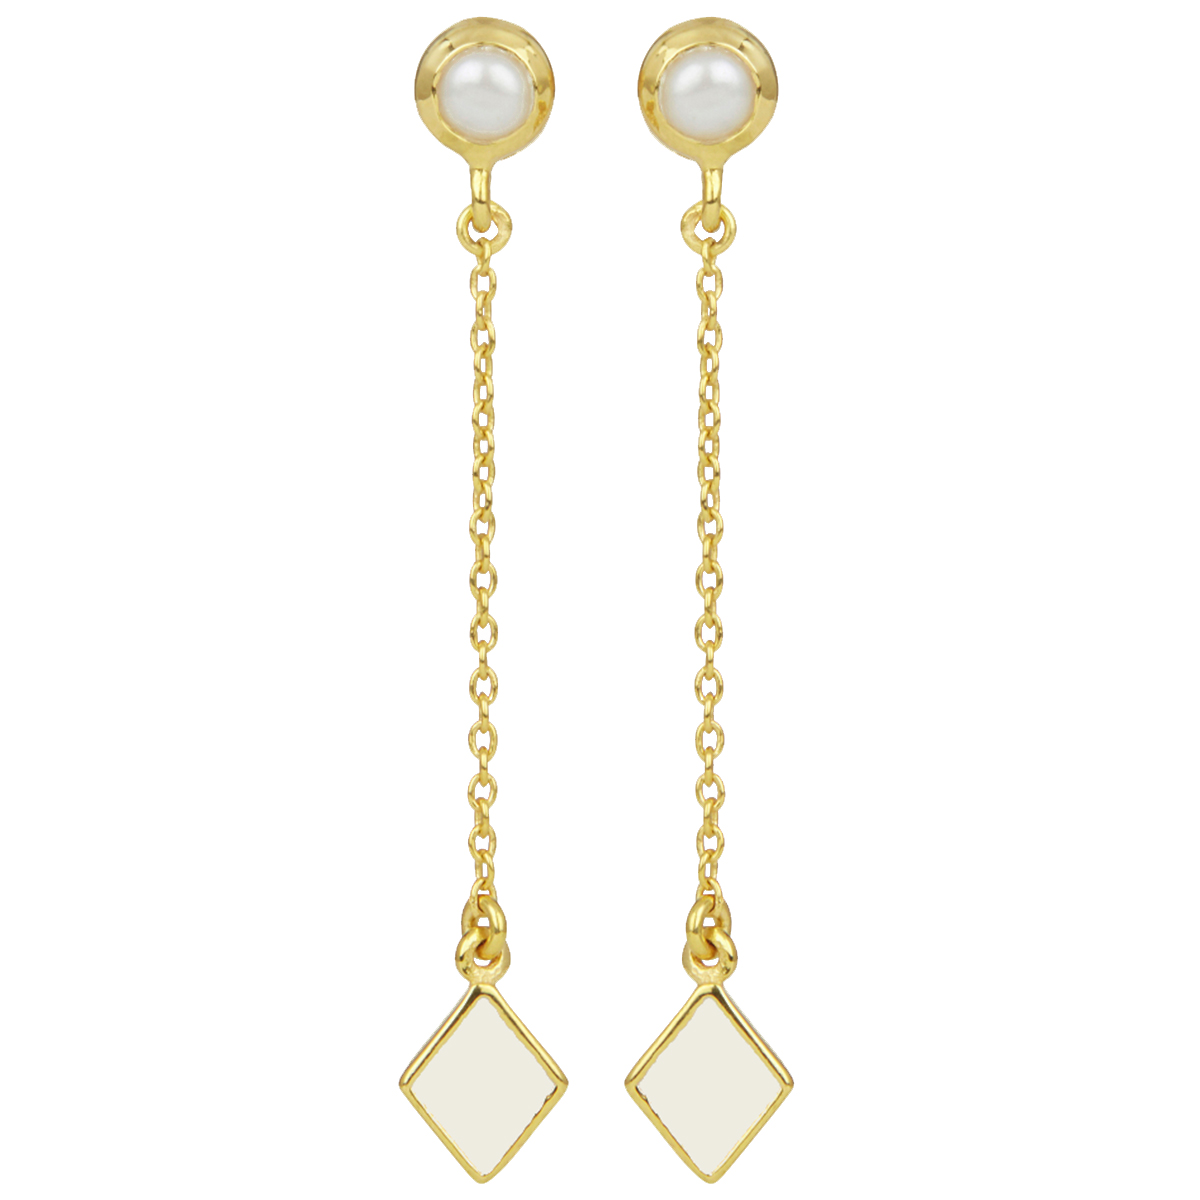 White diamond and pearl long stud earrings by Ottoman Hands